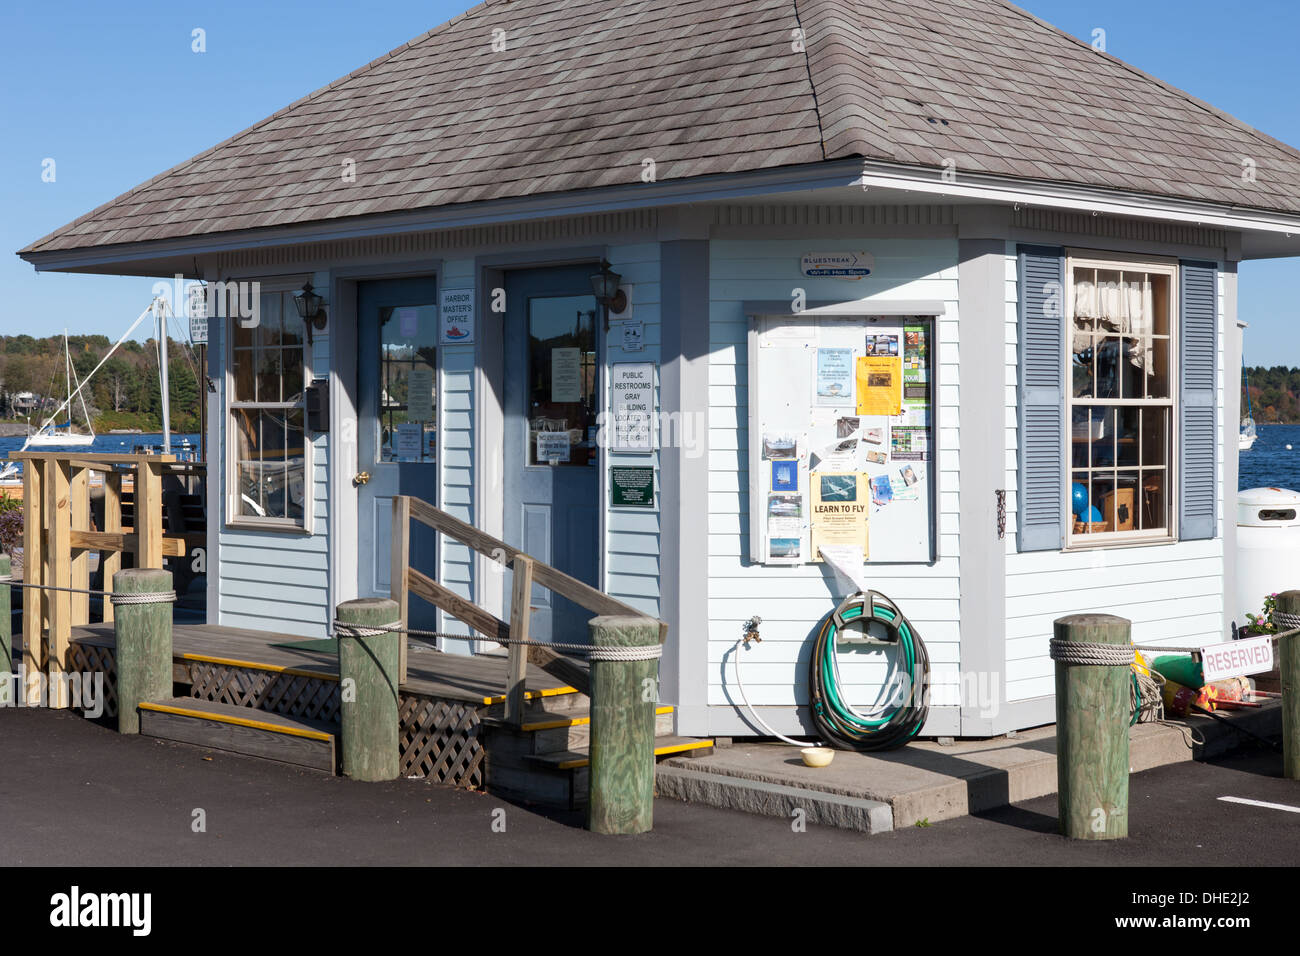 The Harbor Master's office at the public landing in Belfast, Maine. - Stock Image